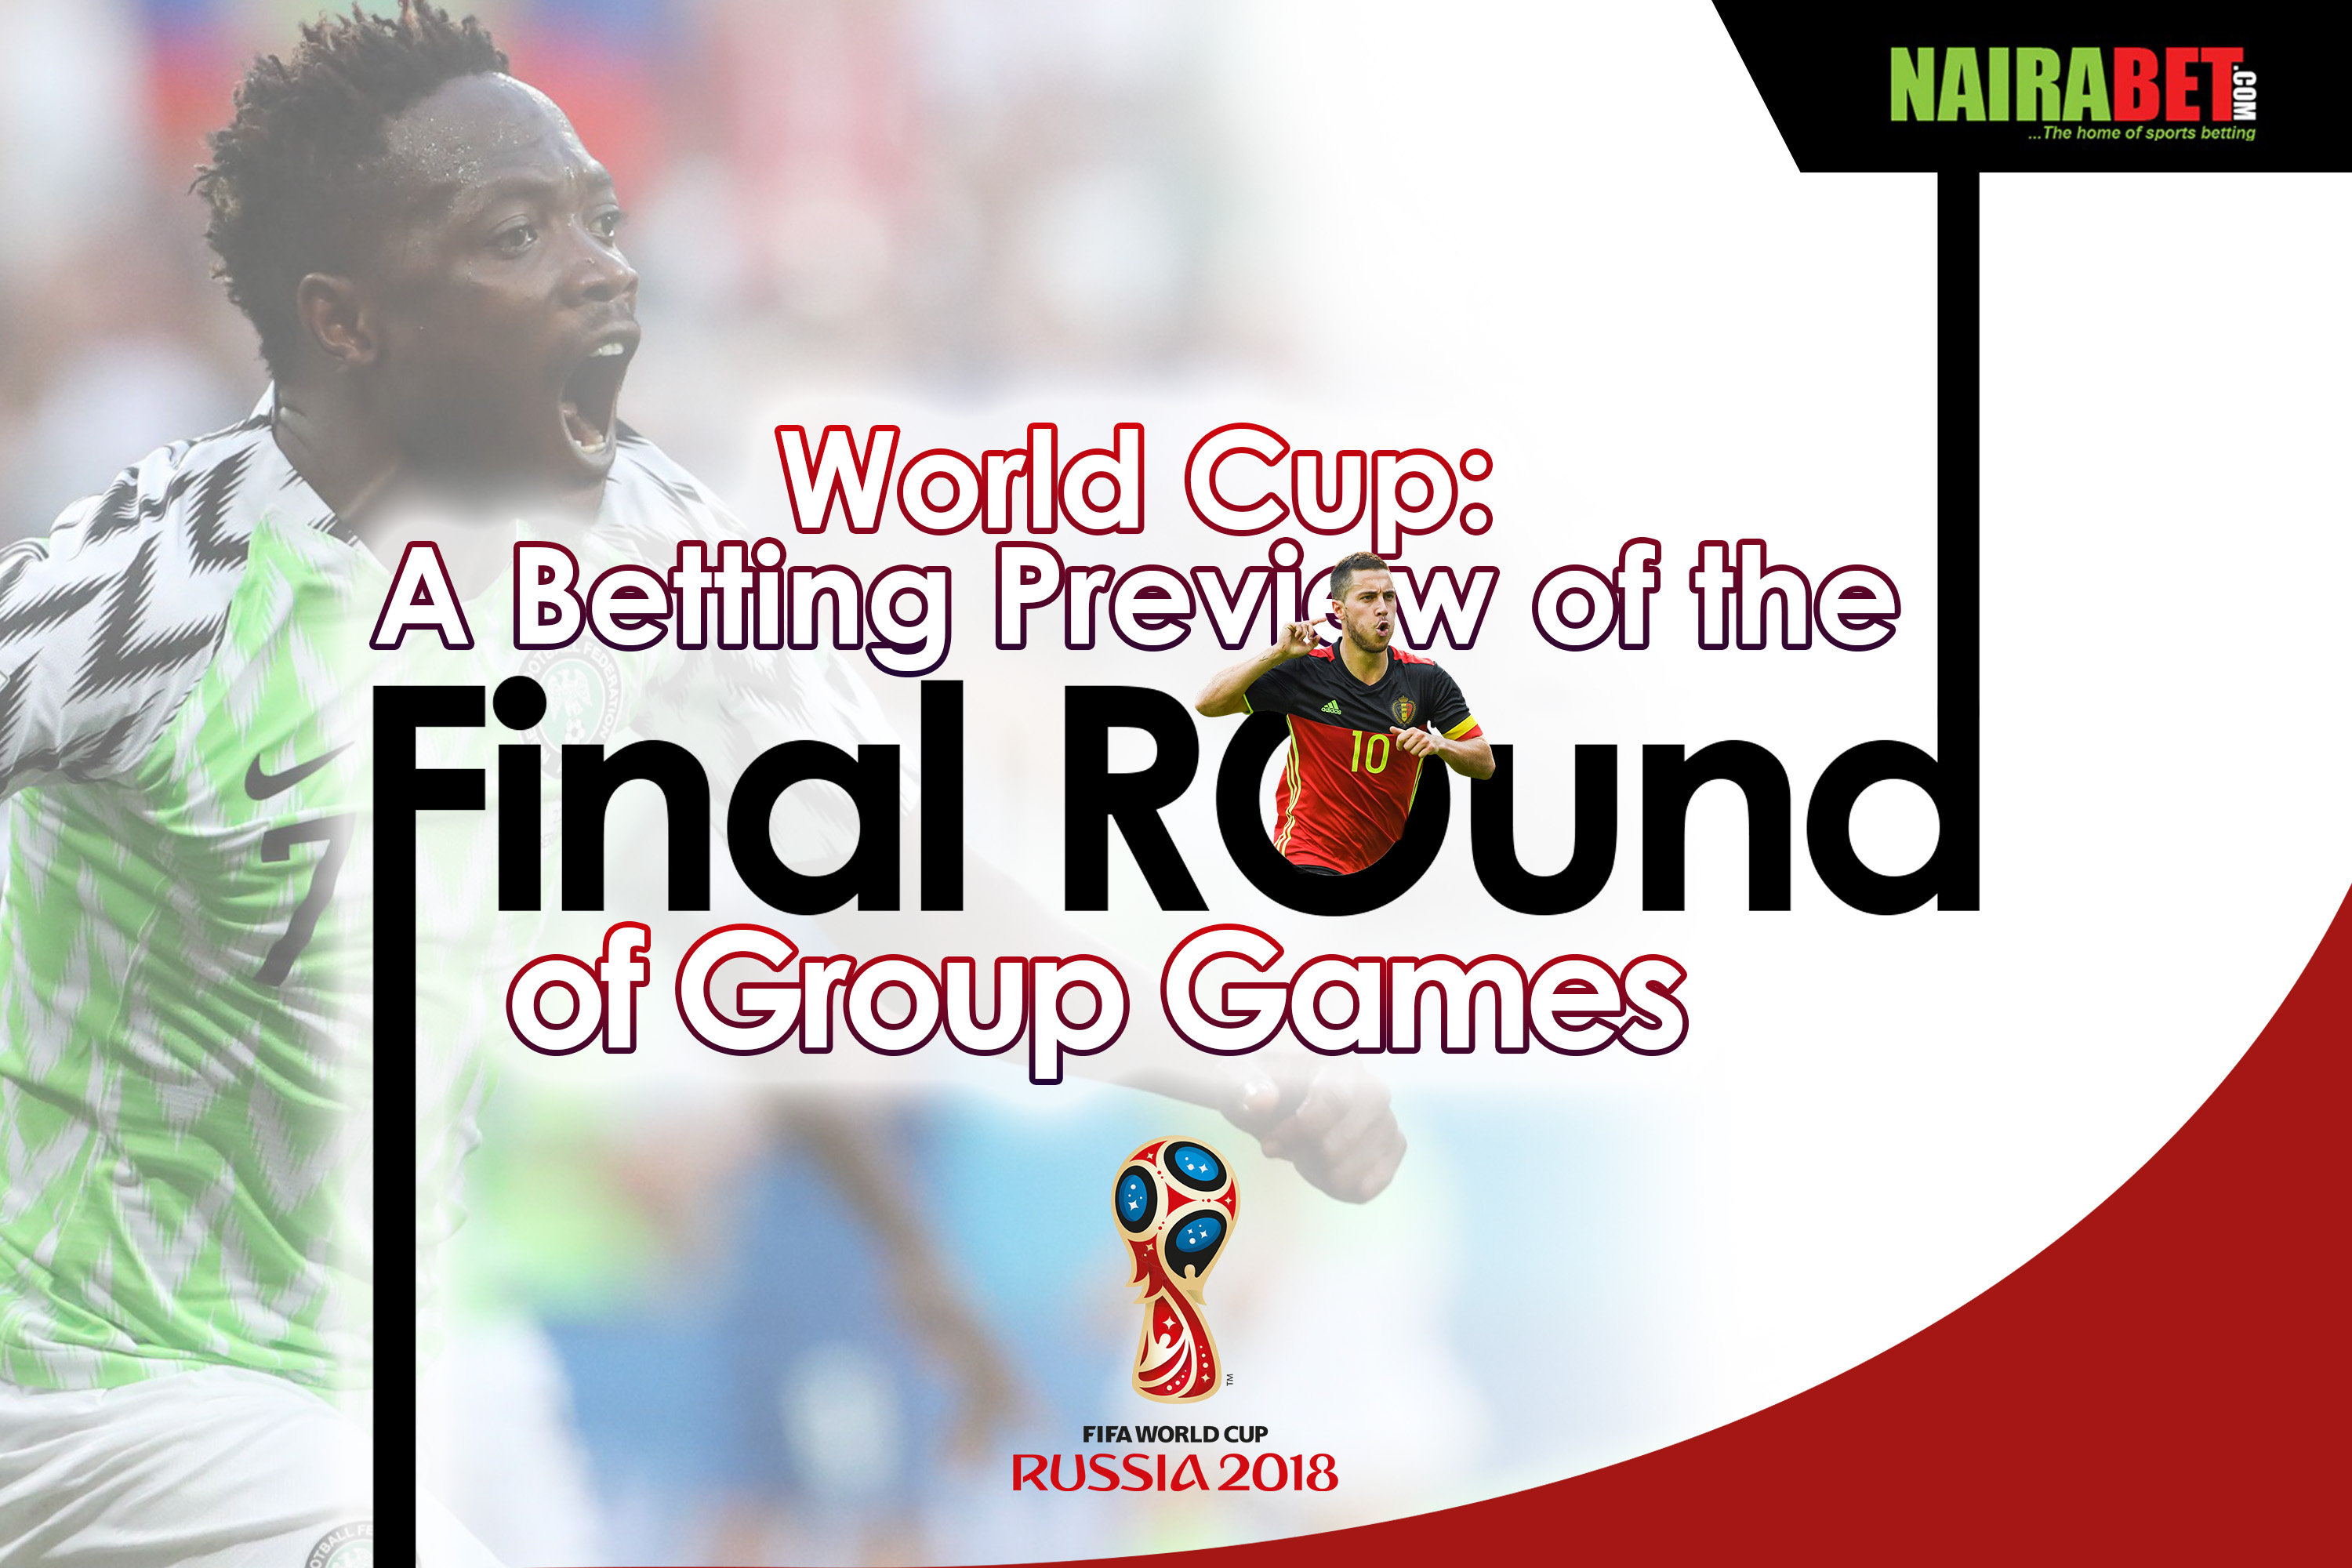 world cup group games final round